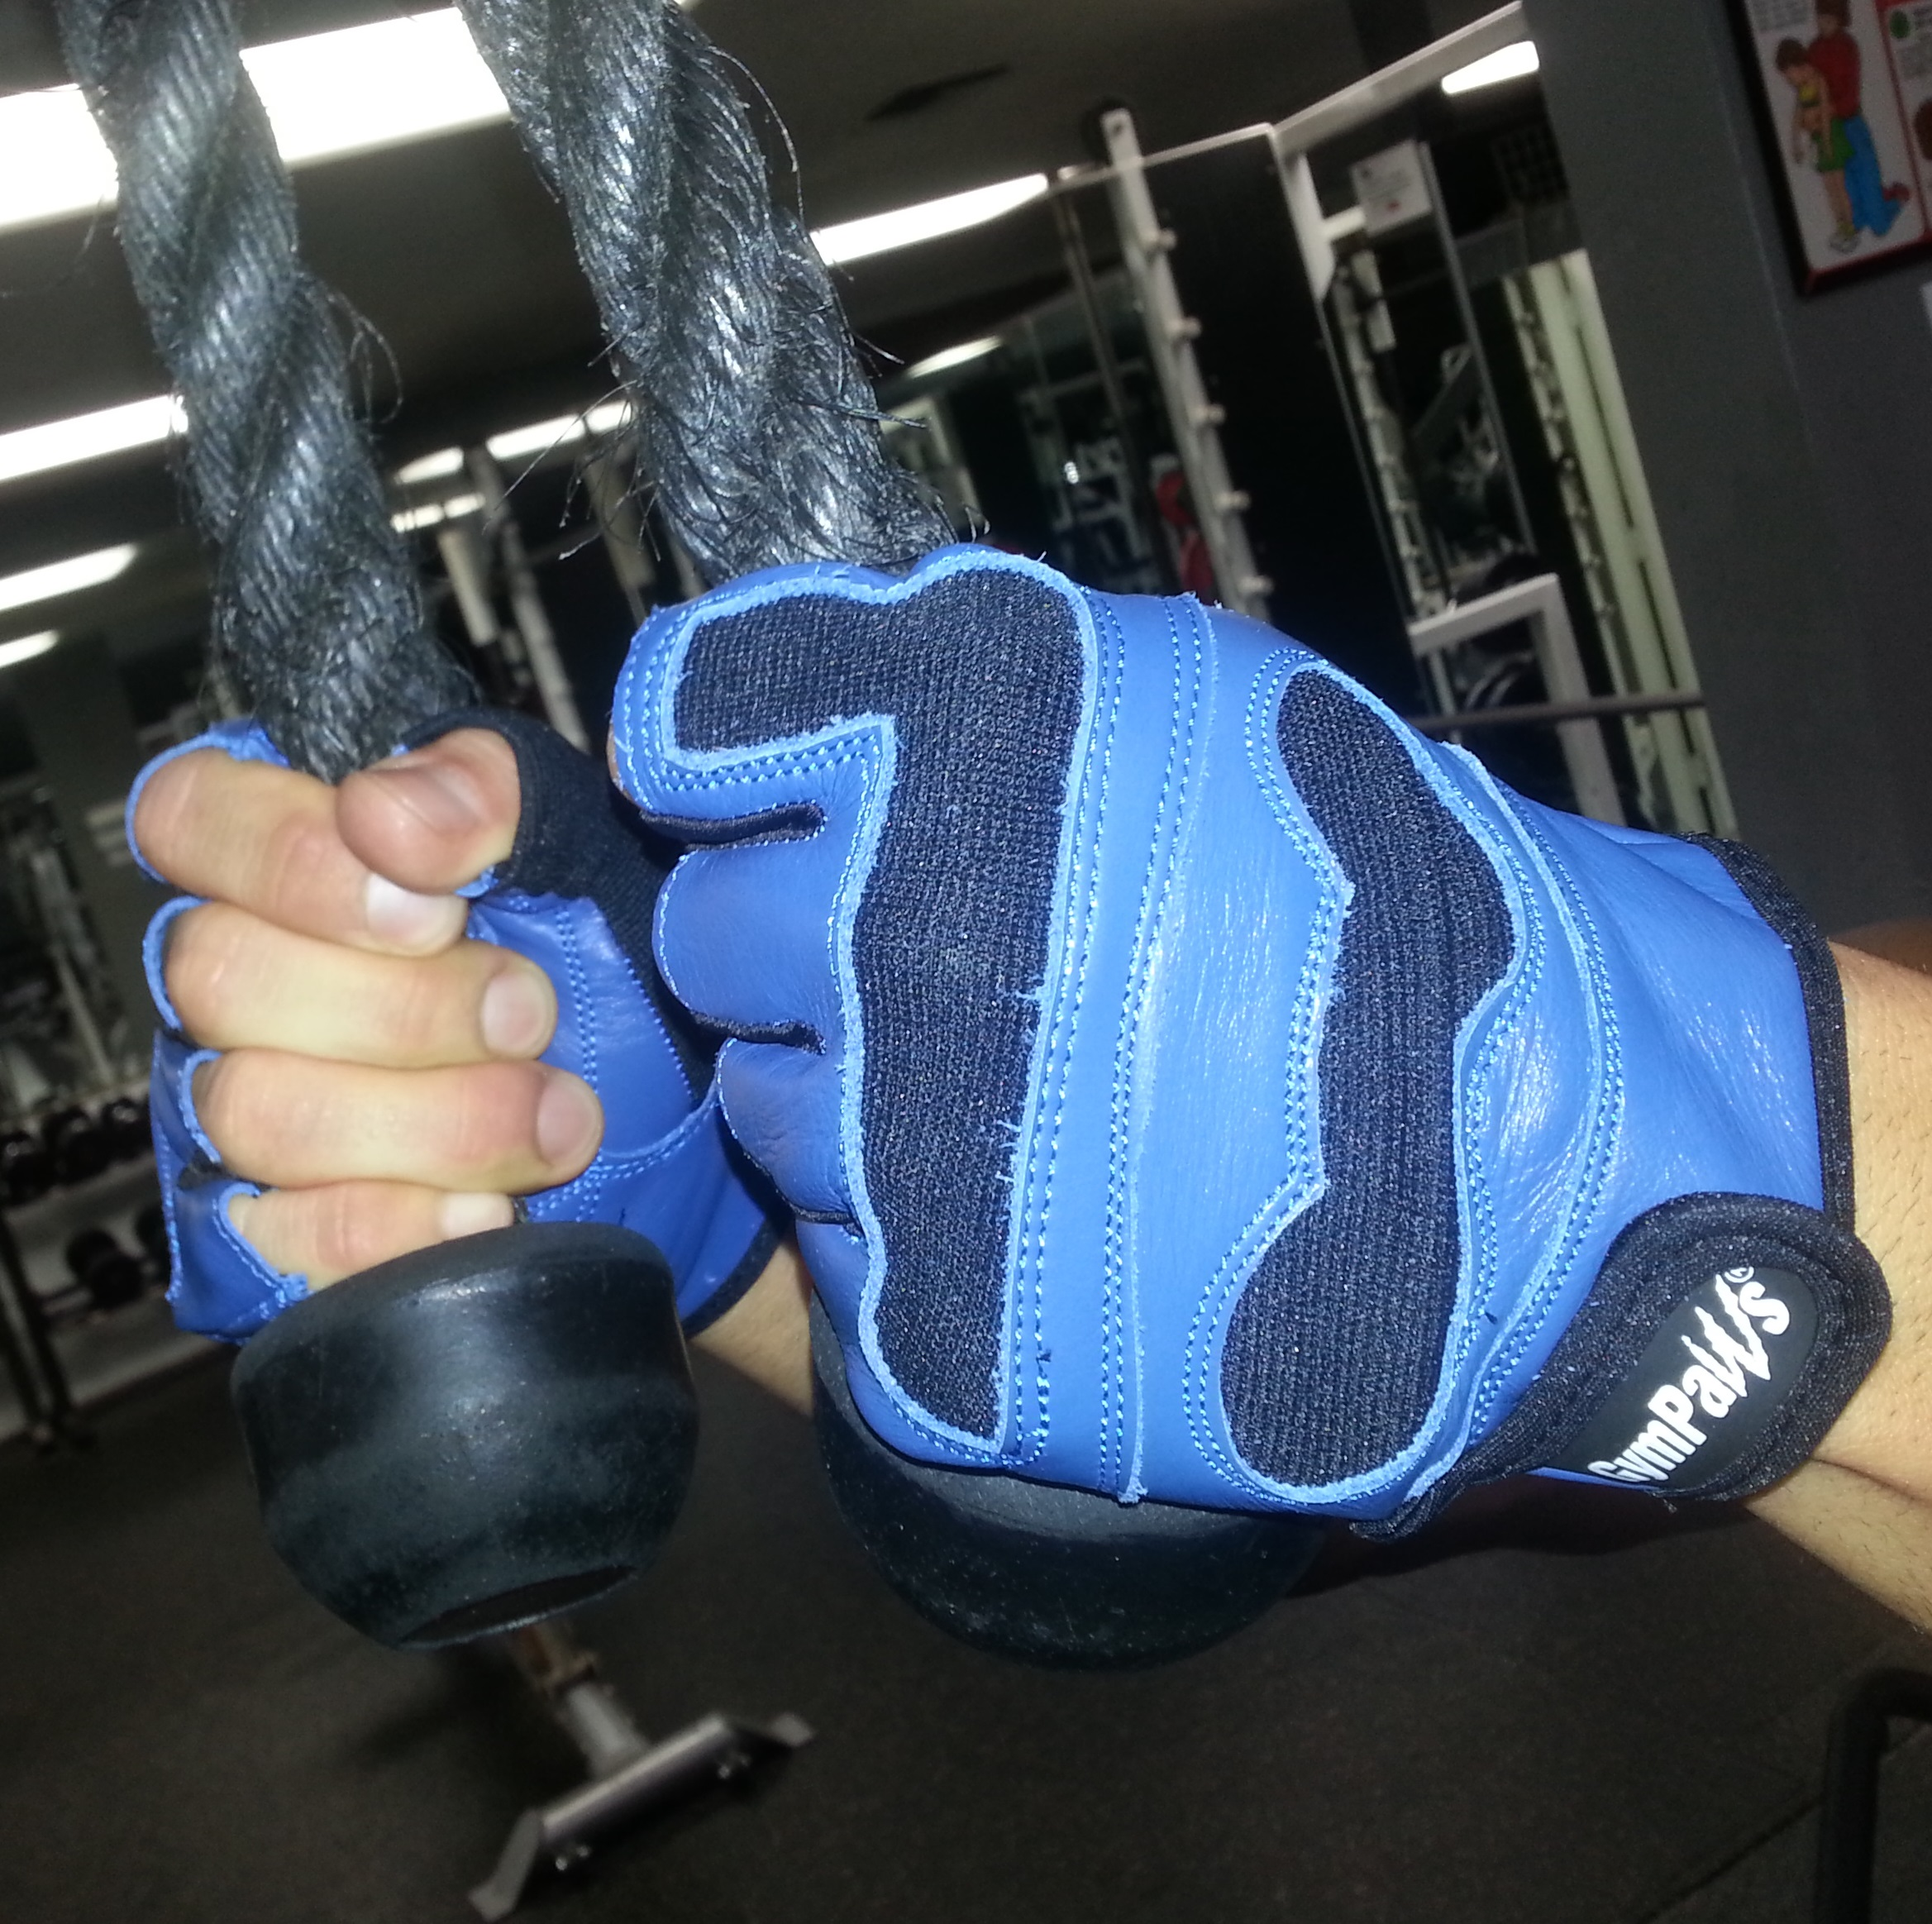 Fitness Gloves New Zealand: The Swolemate Gym Glove